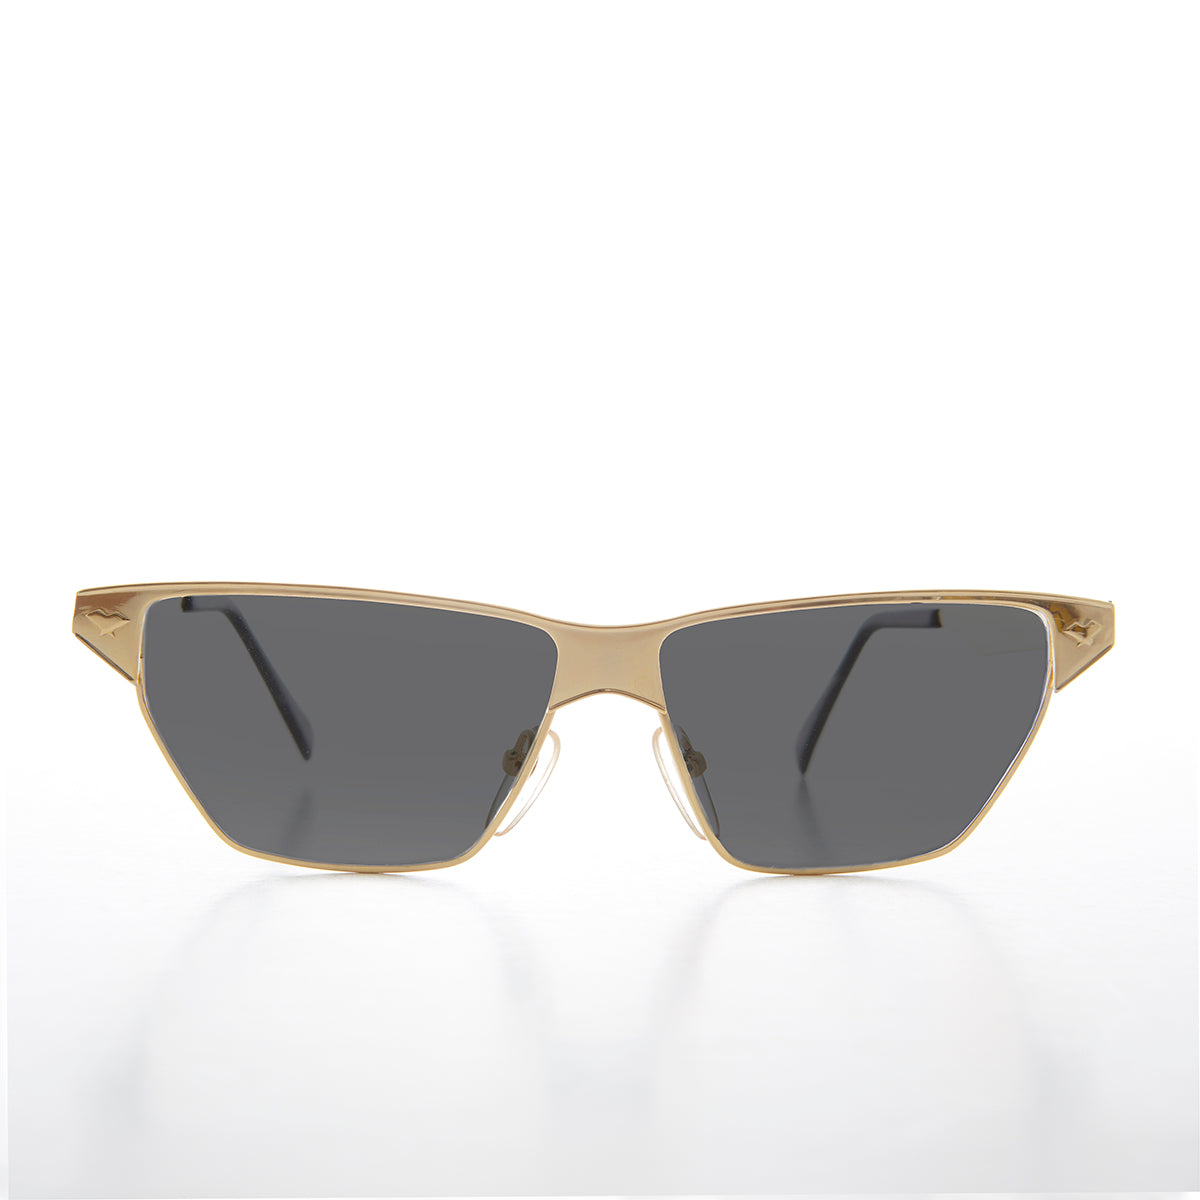 Gold Triangular Frame Vintage Sunglass